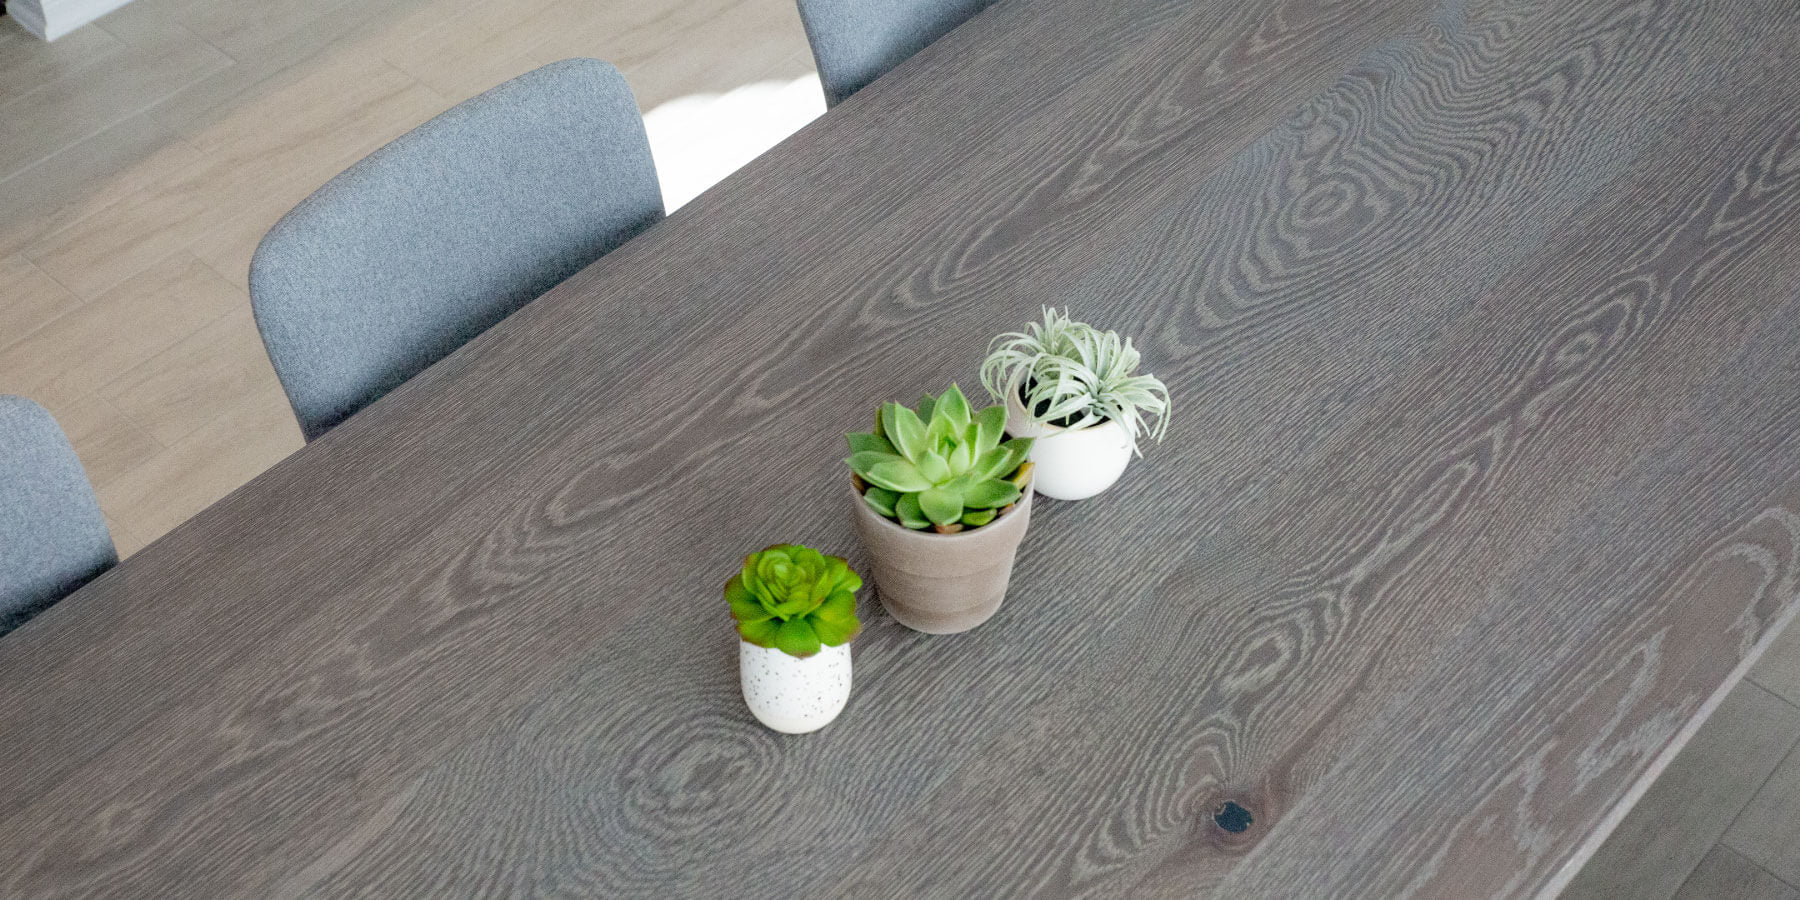 Cerused wood dining table with three small succulents sitting on top of the table